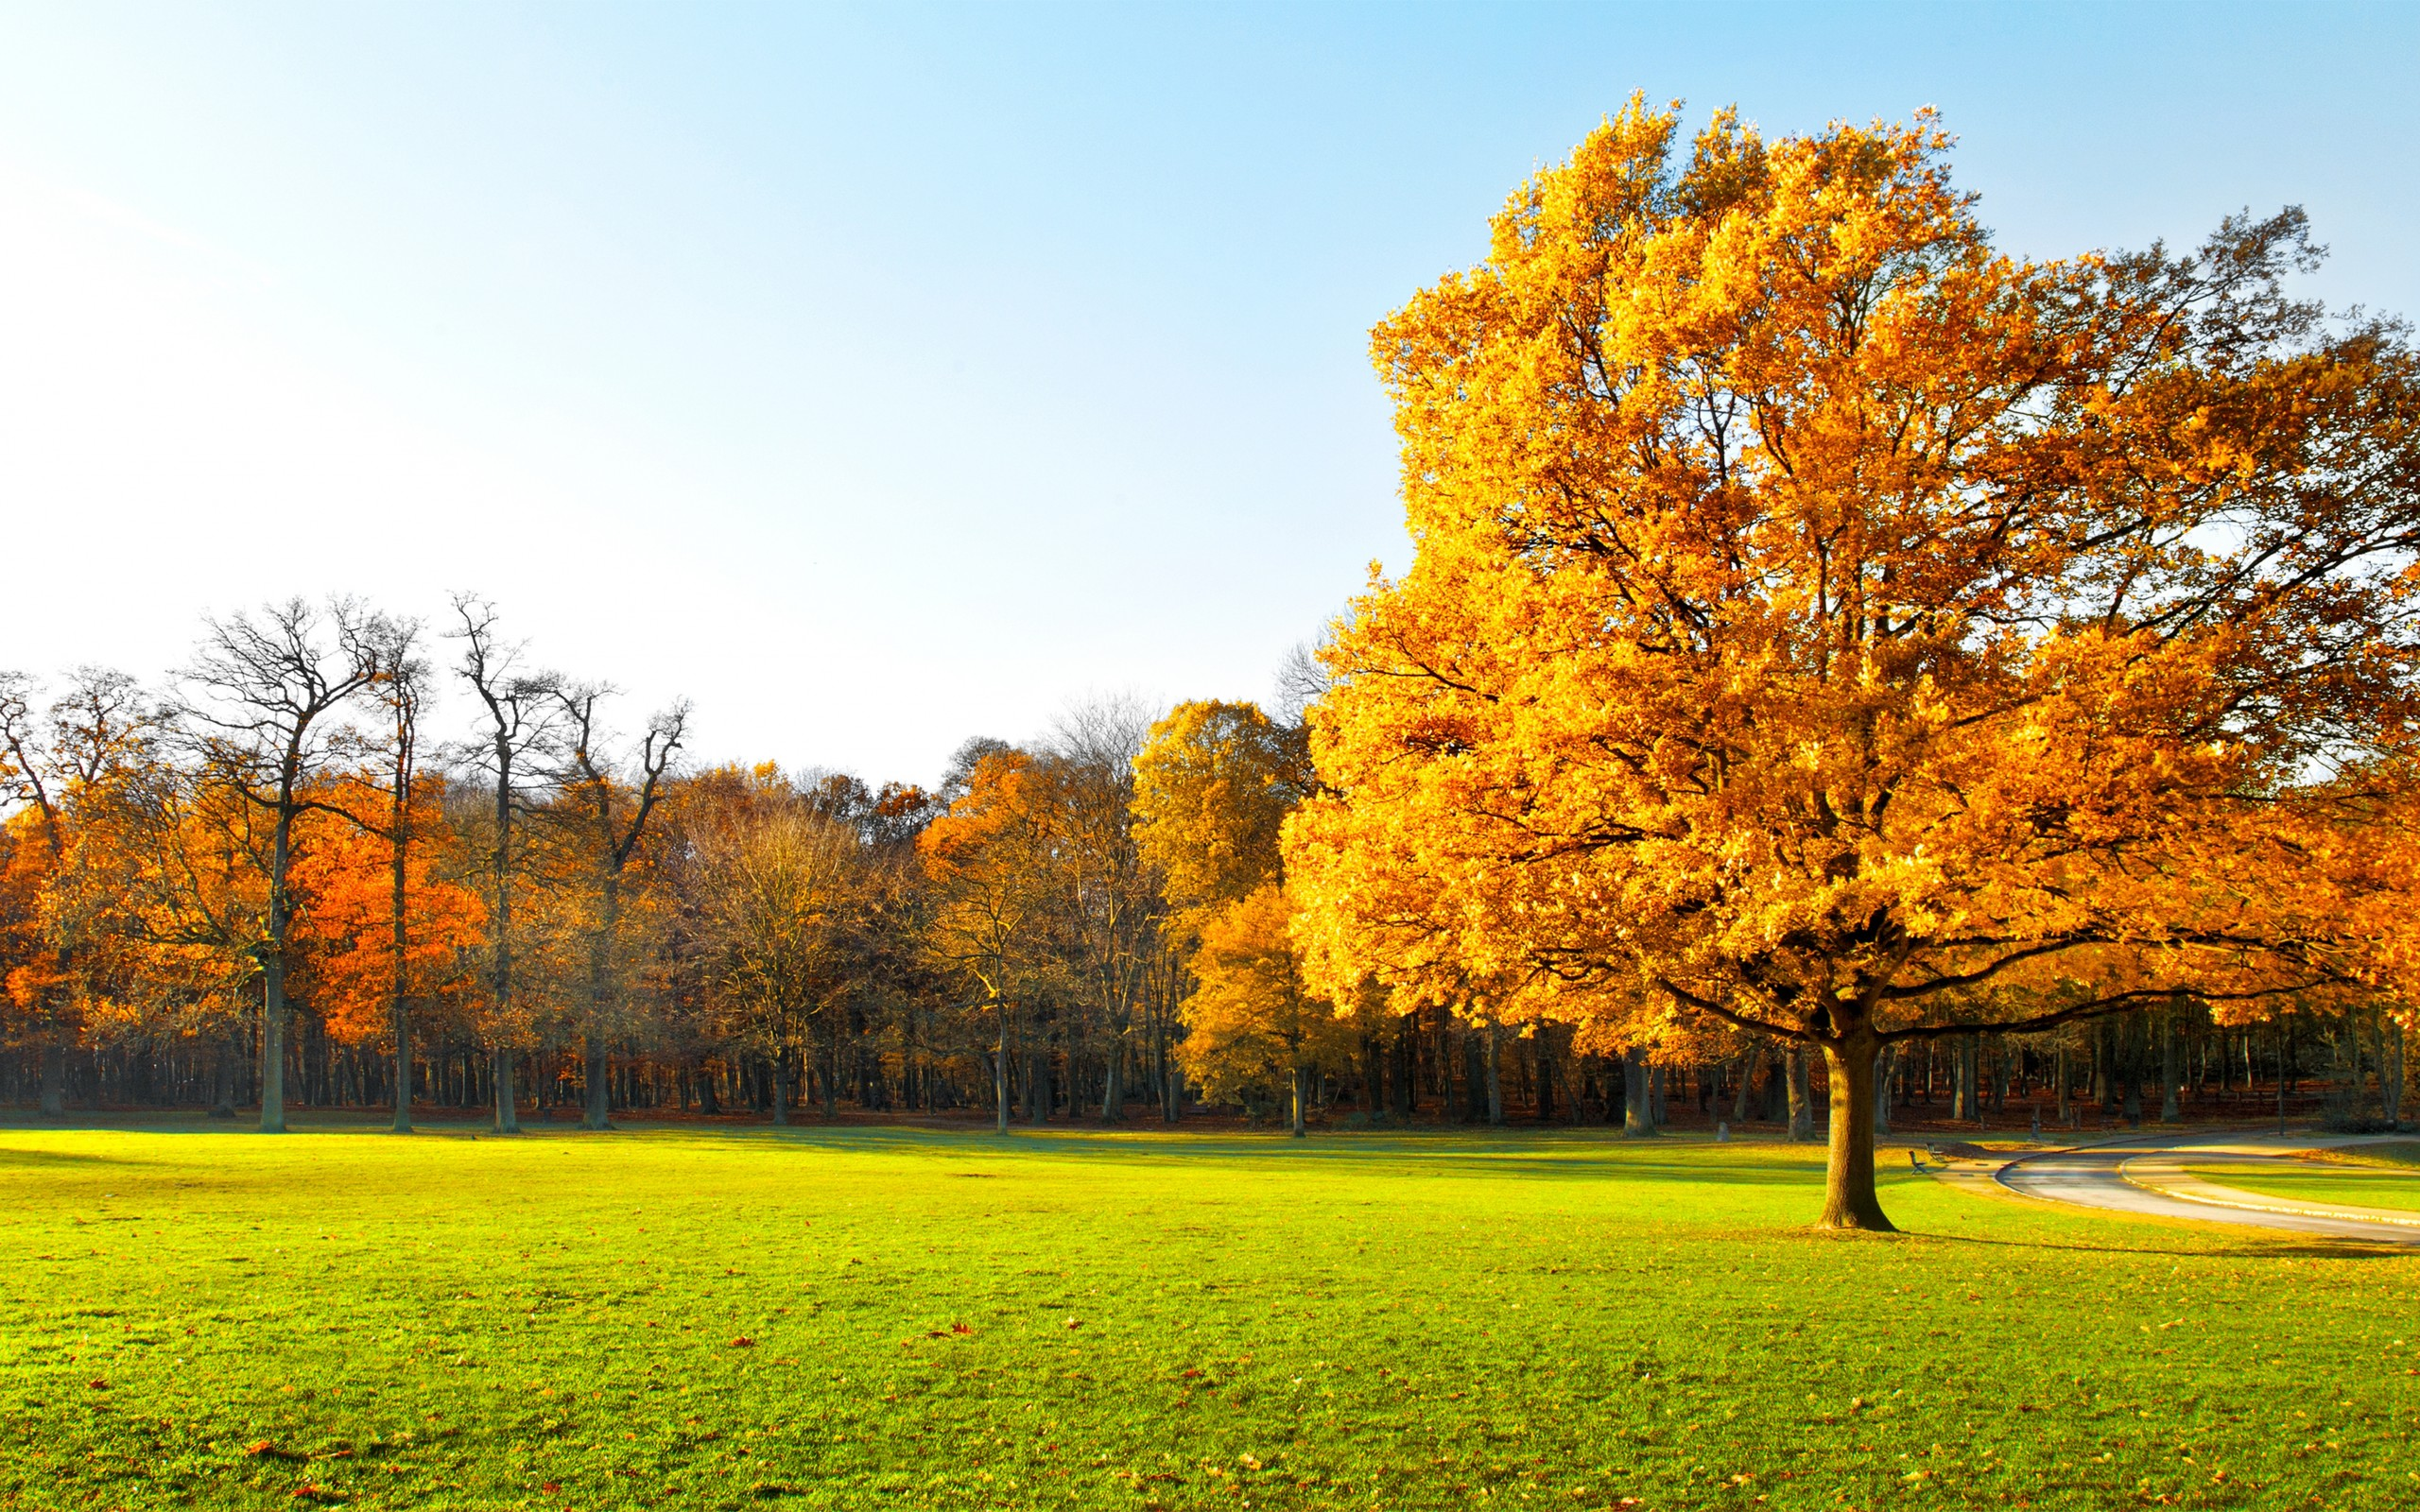 Autumn Tree Garden Landscape Wallpapers - 2560x1600 - 1530131